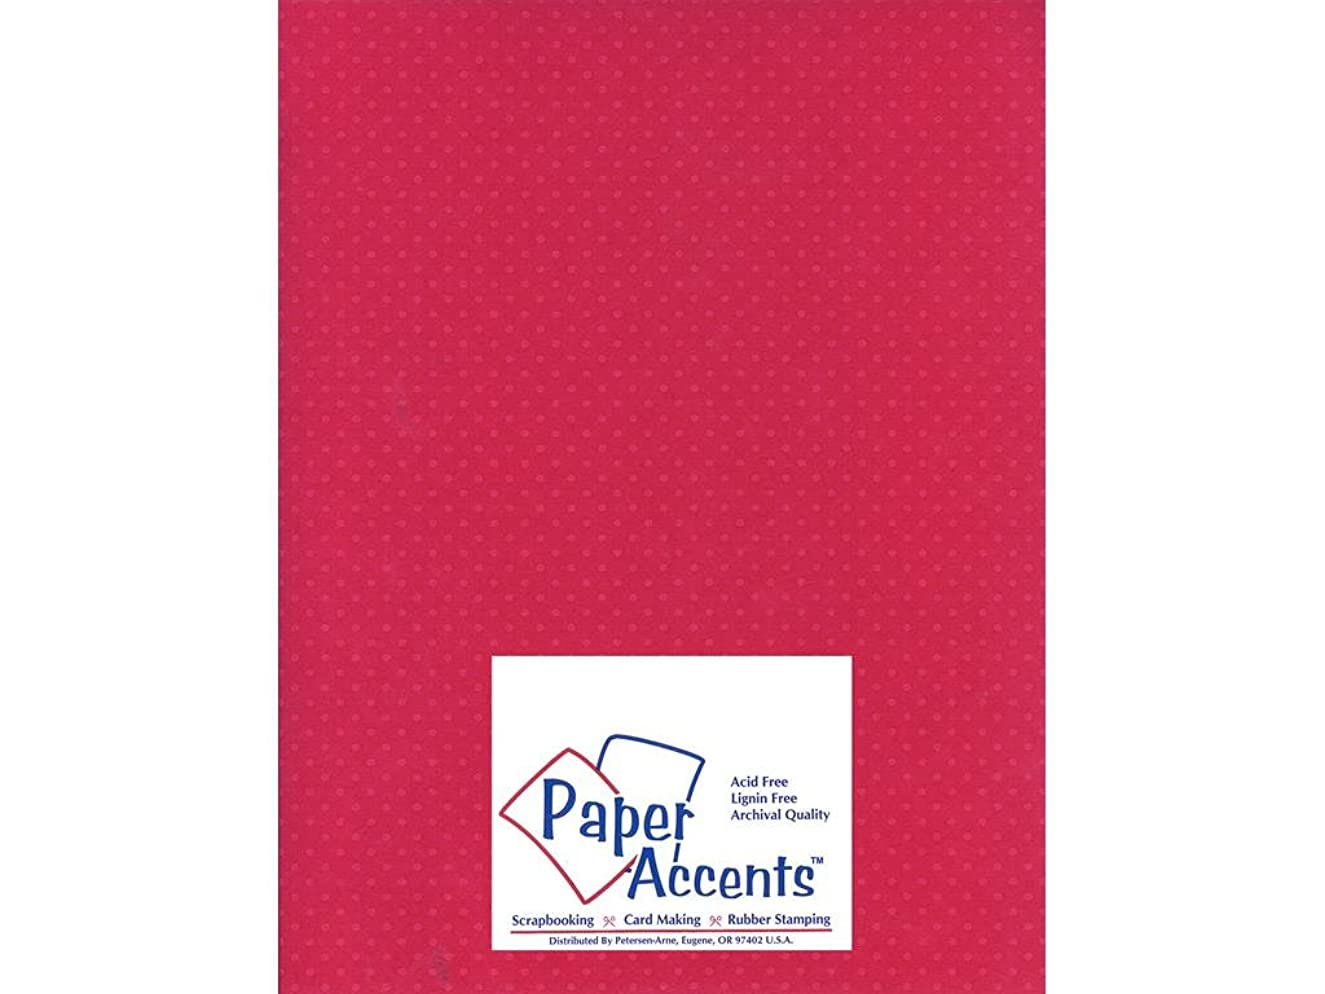 Accent Design Paper Accents Cdstk Mini Dots 8.5x11 80# Rose Heather